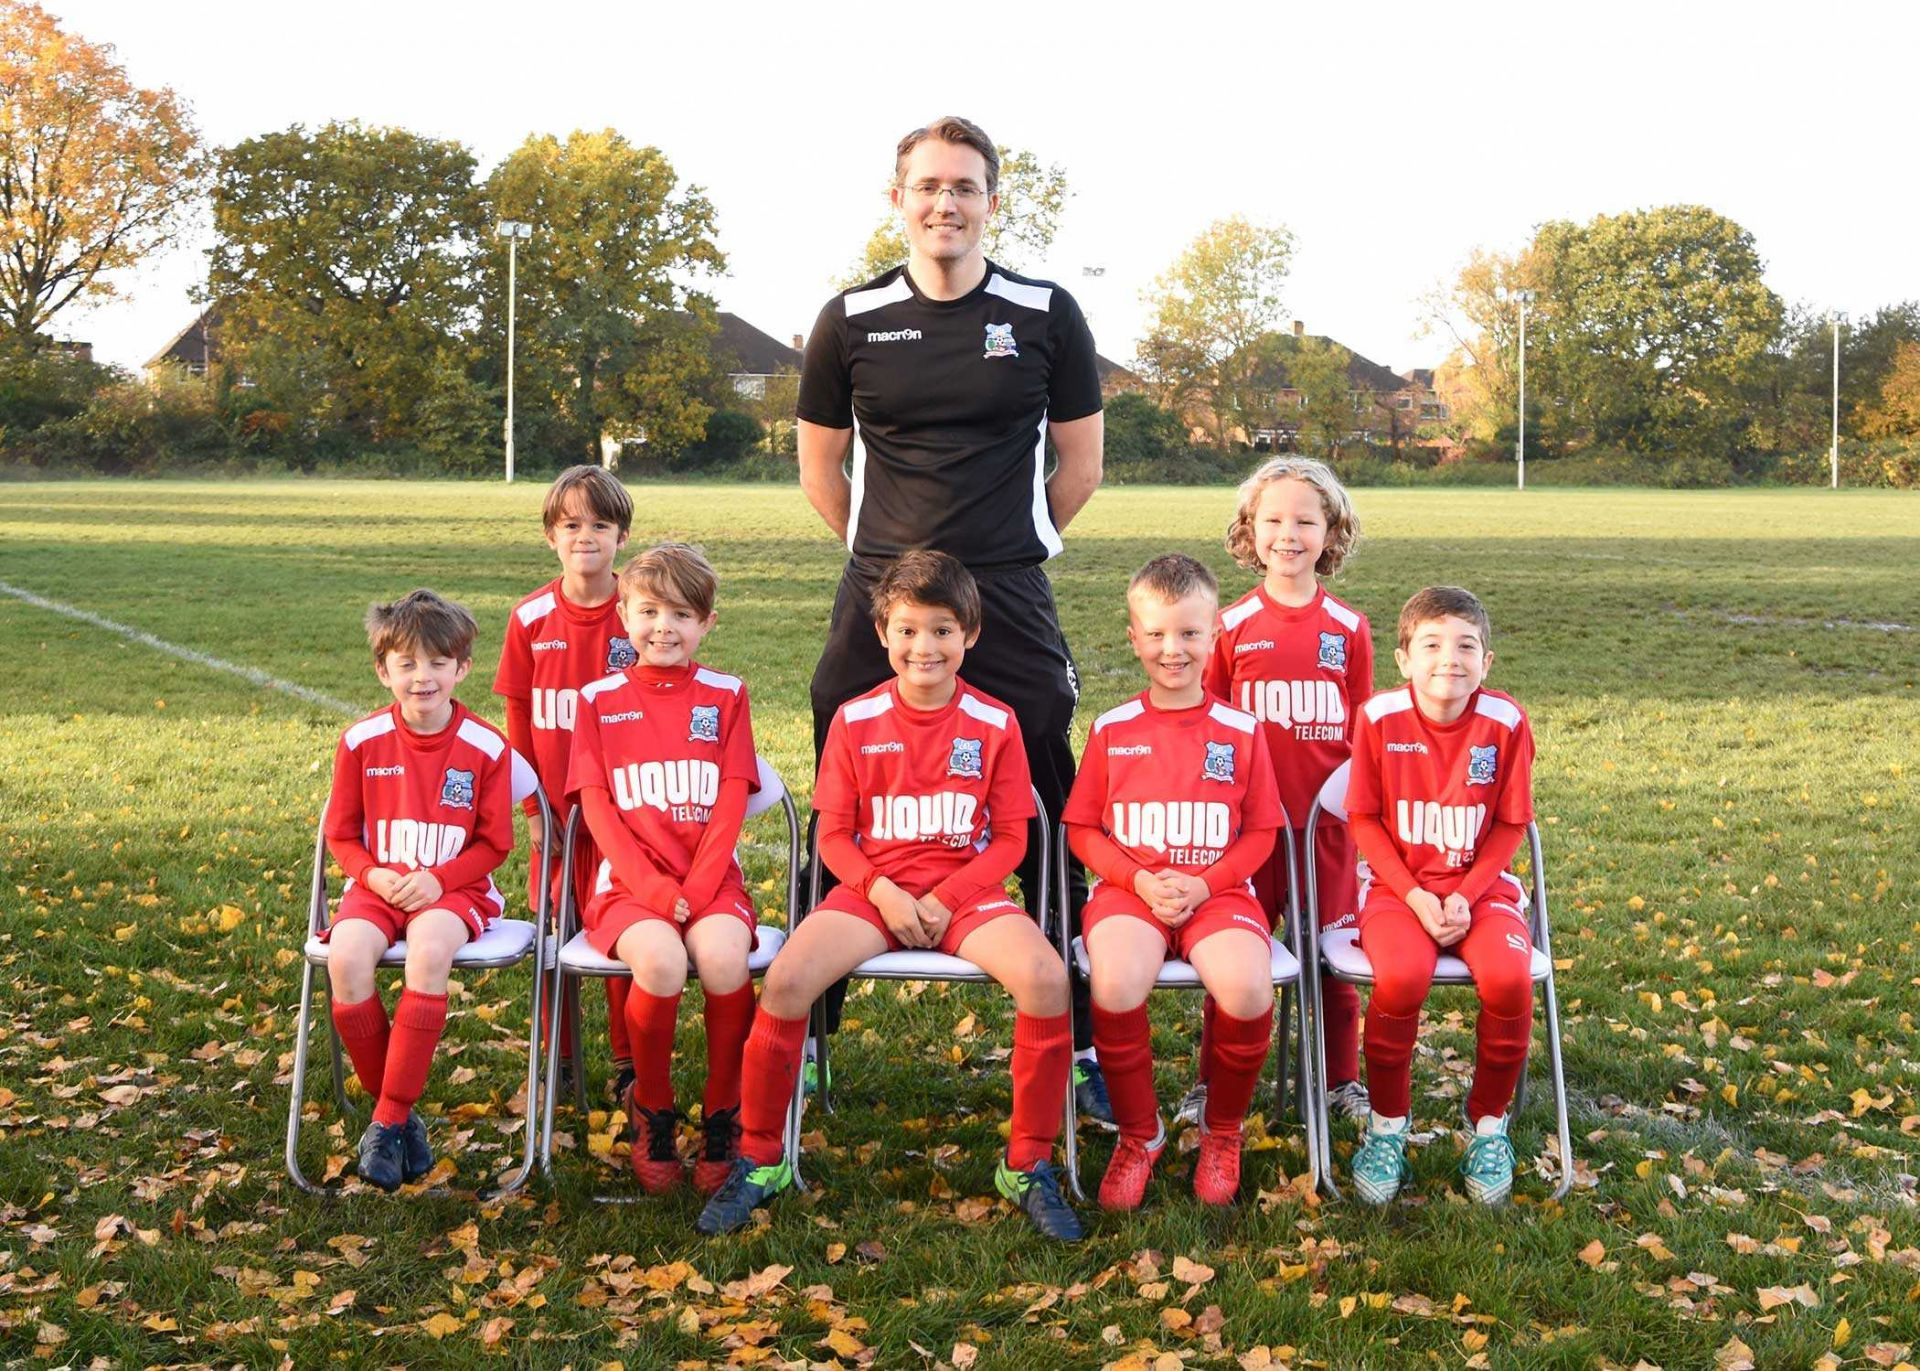 WH Youth FC Website Teams U9 Swifts 1